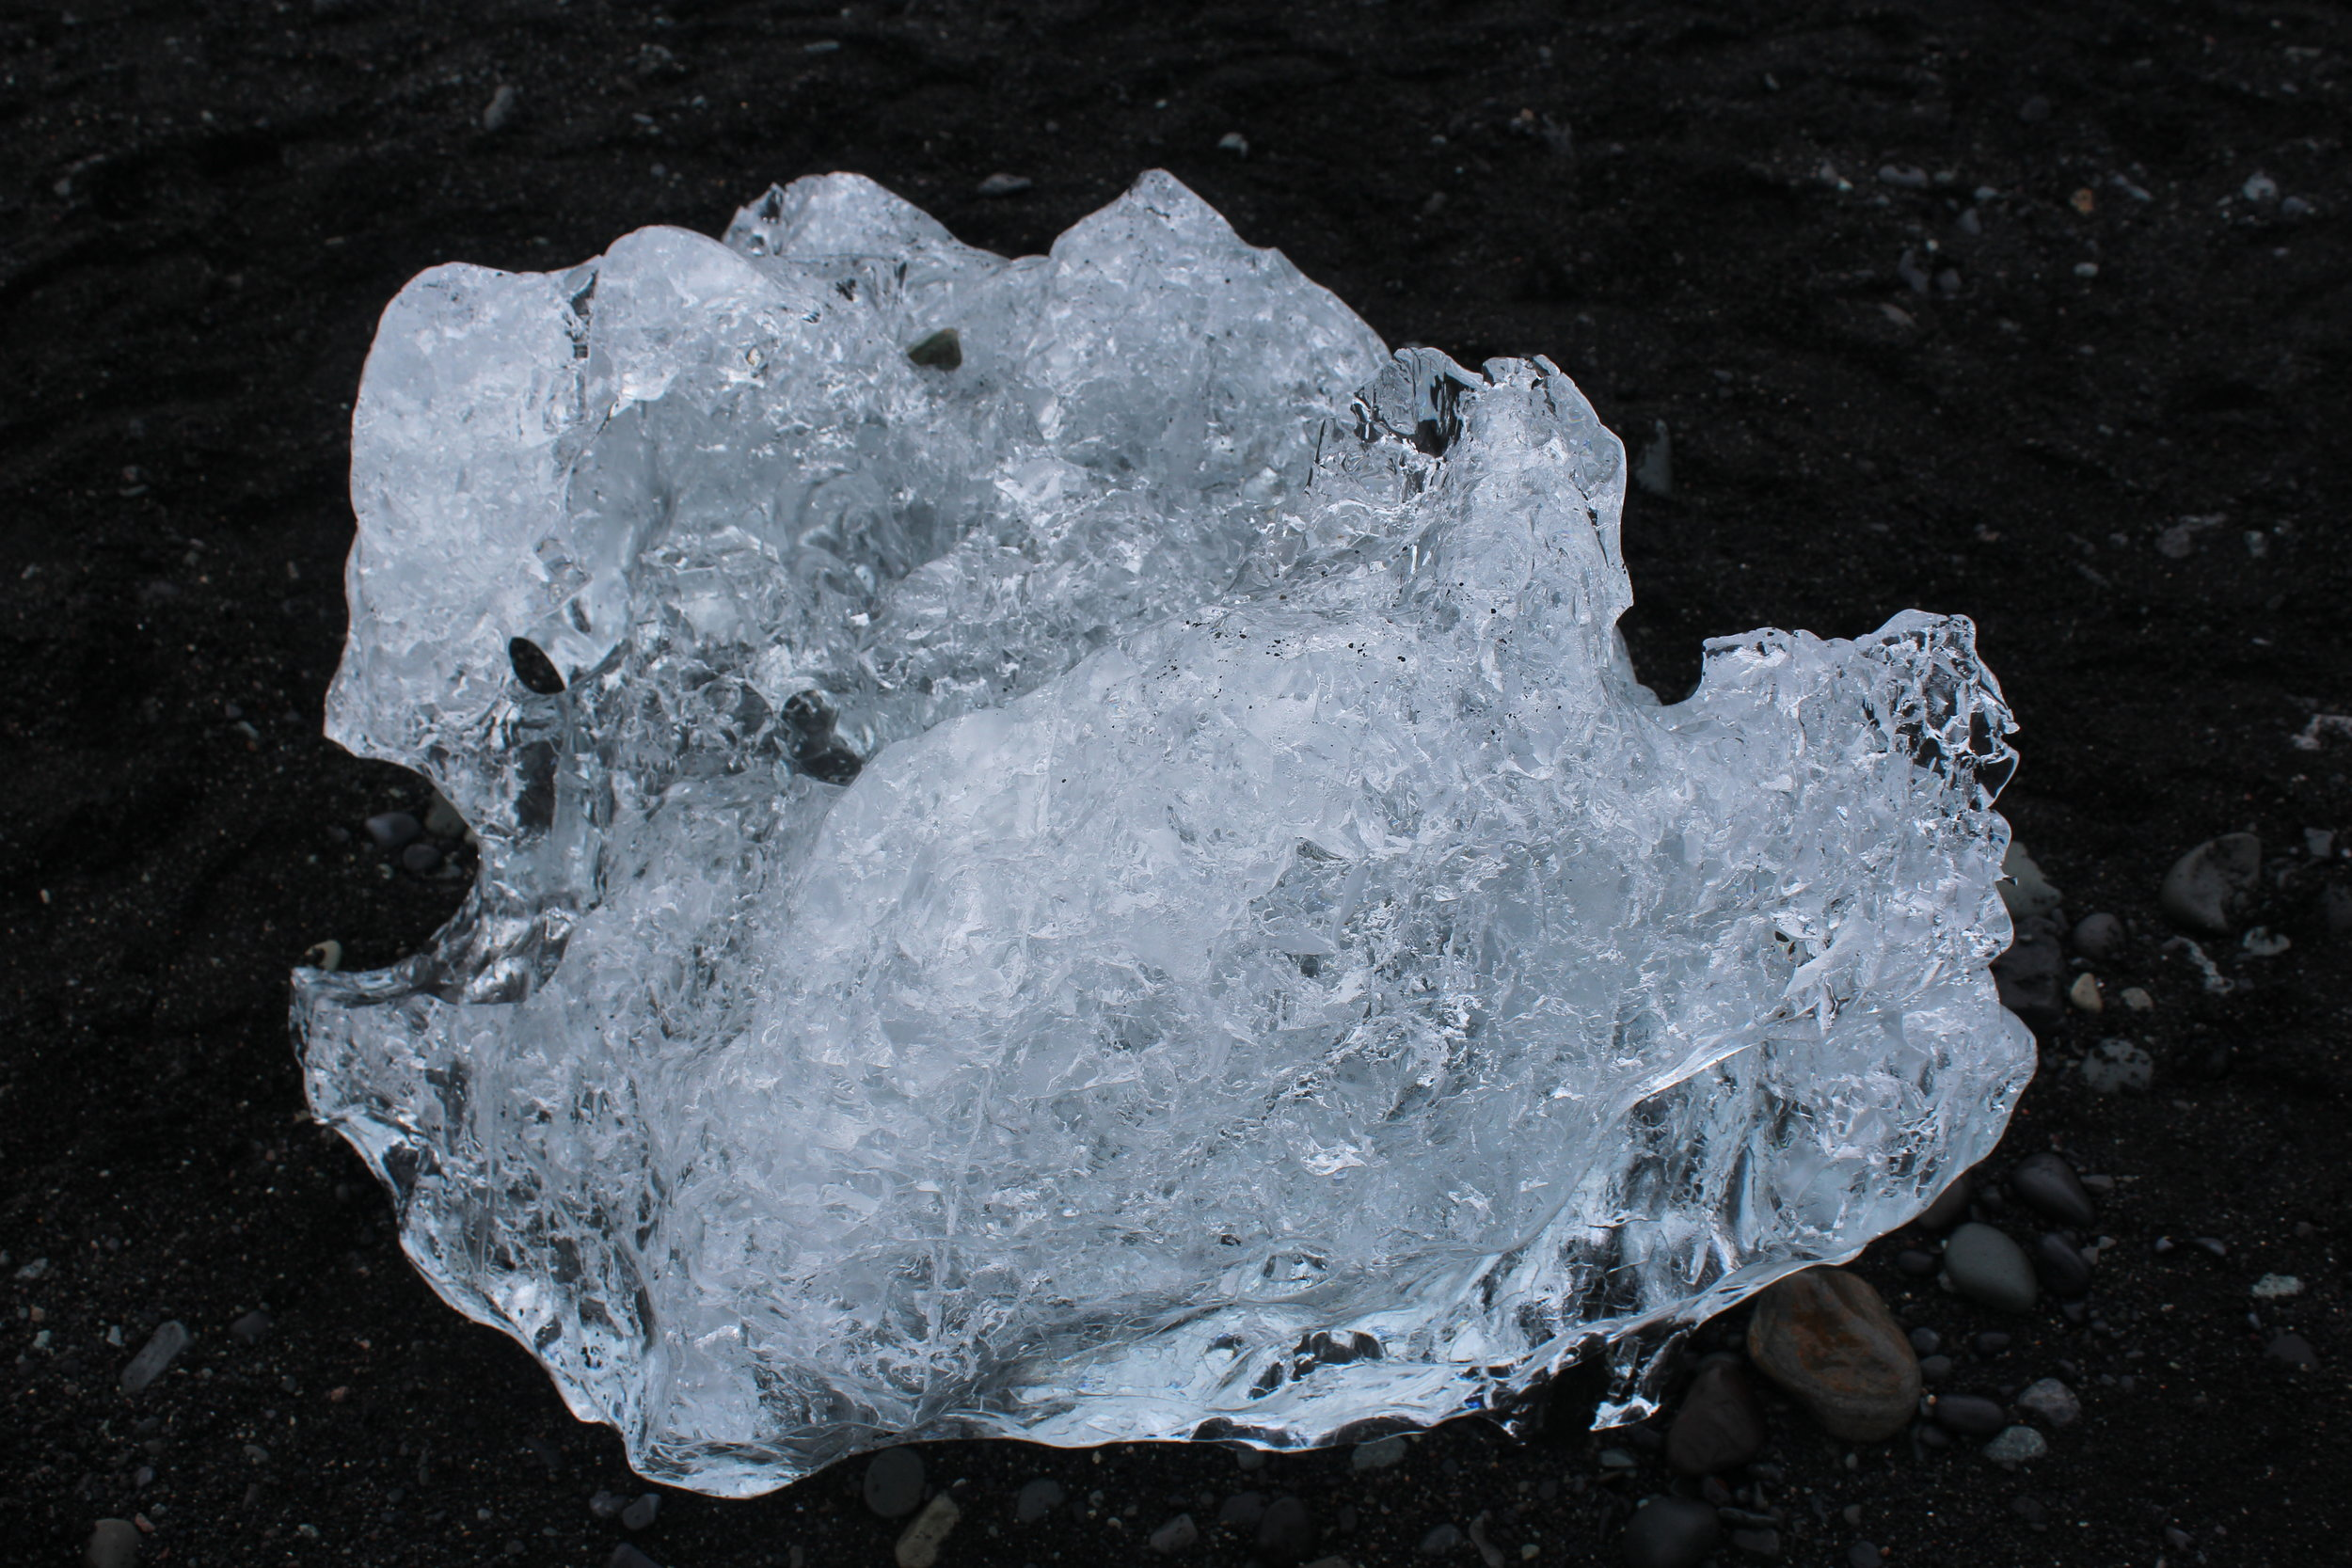 - The nearby Diamond Beach contains chunks of ice that have floated down from the lagoon.